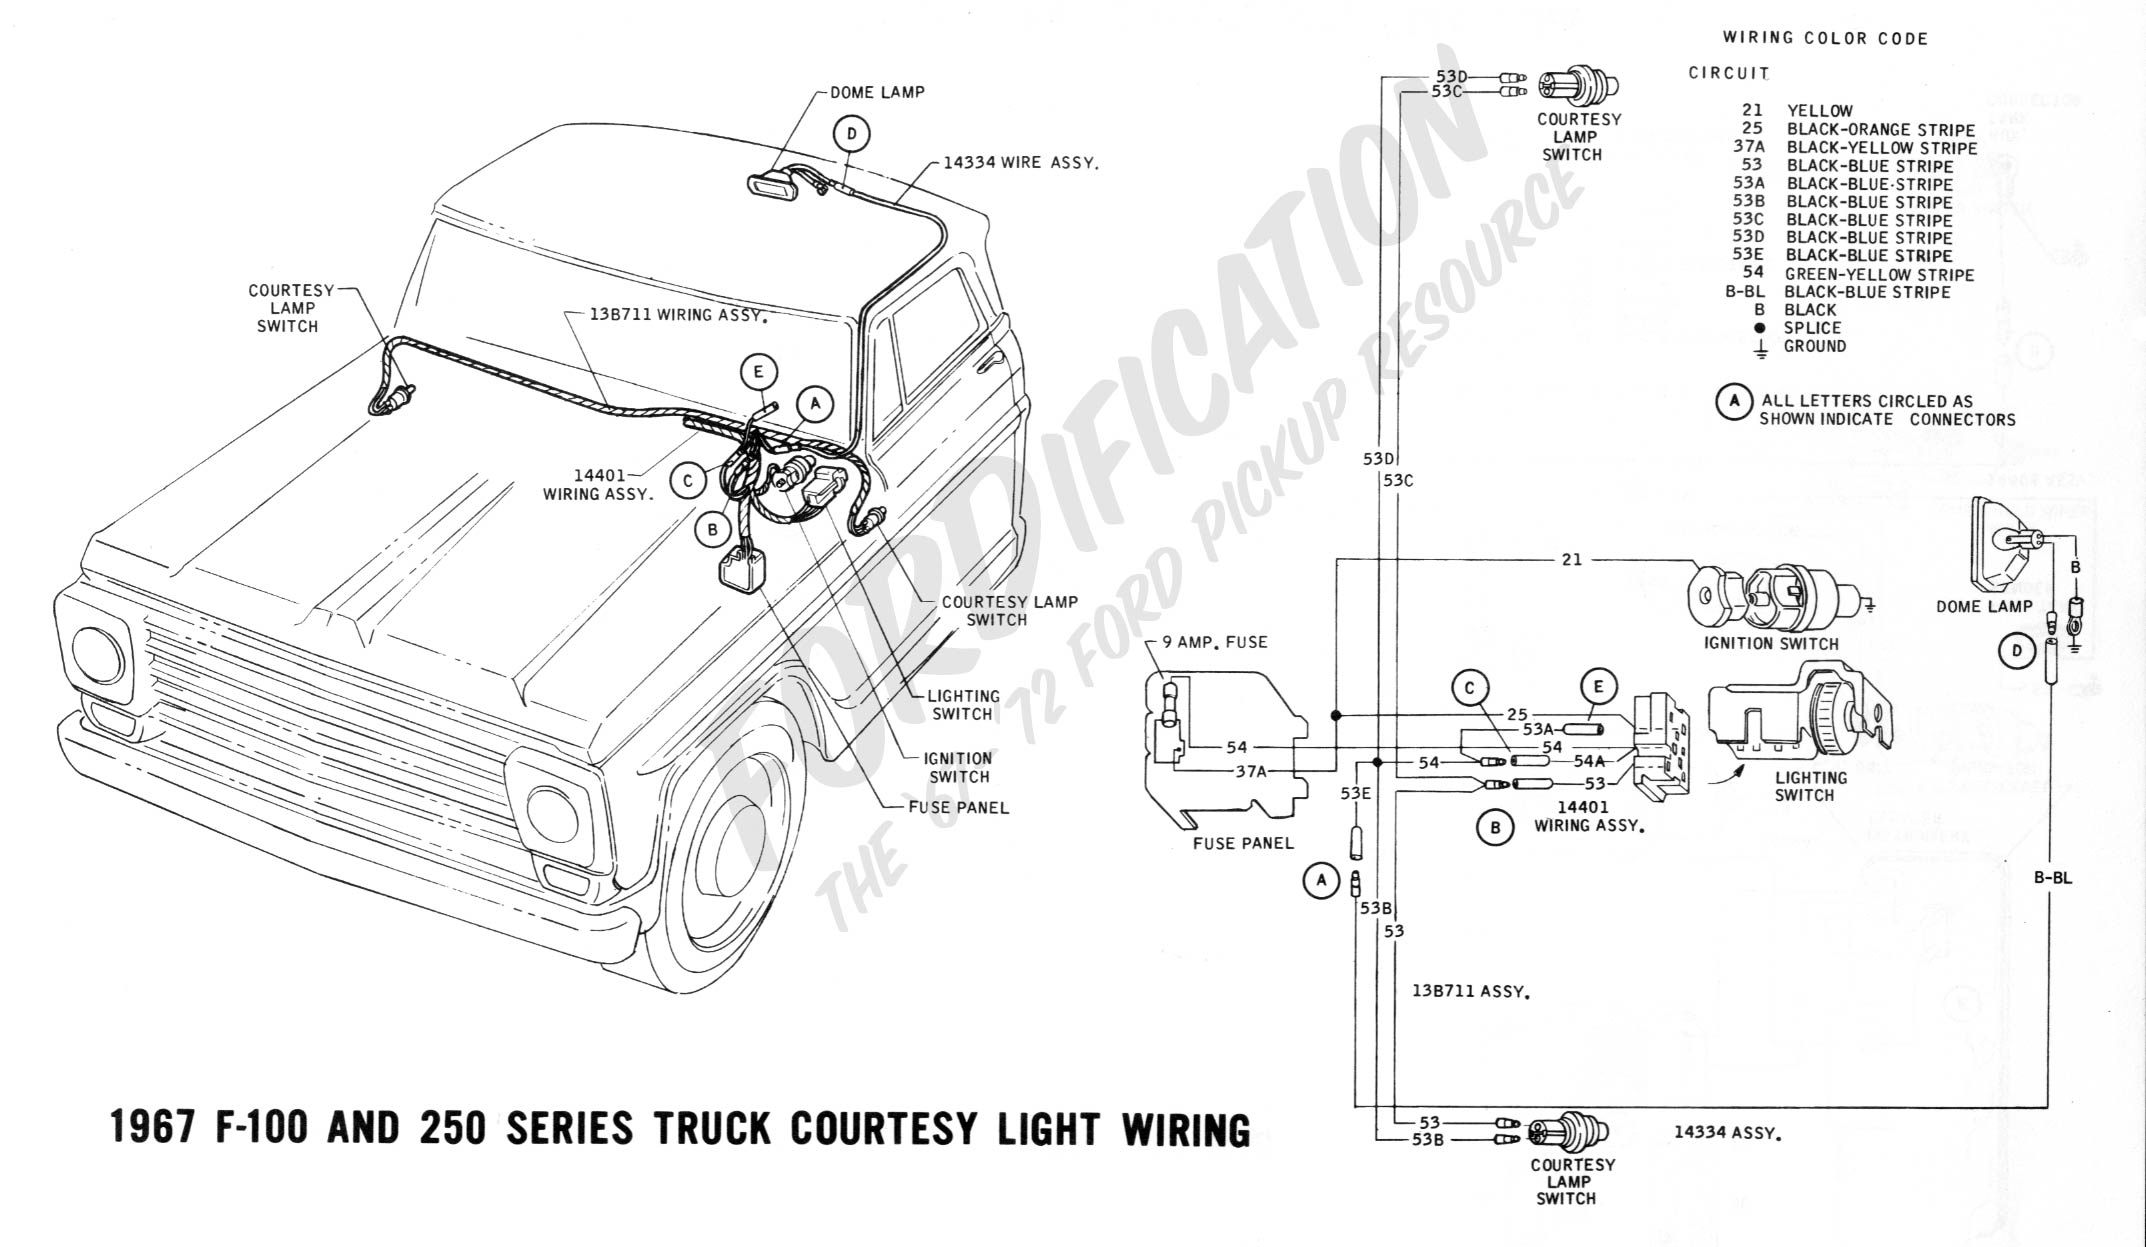 wiring 1967courtesylight wiring in ignition switch in 1966 f100 ford truck enthusiasts forums 1986 Ford F-250 Fuel System Wiring Diagram at fashall.co